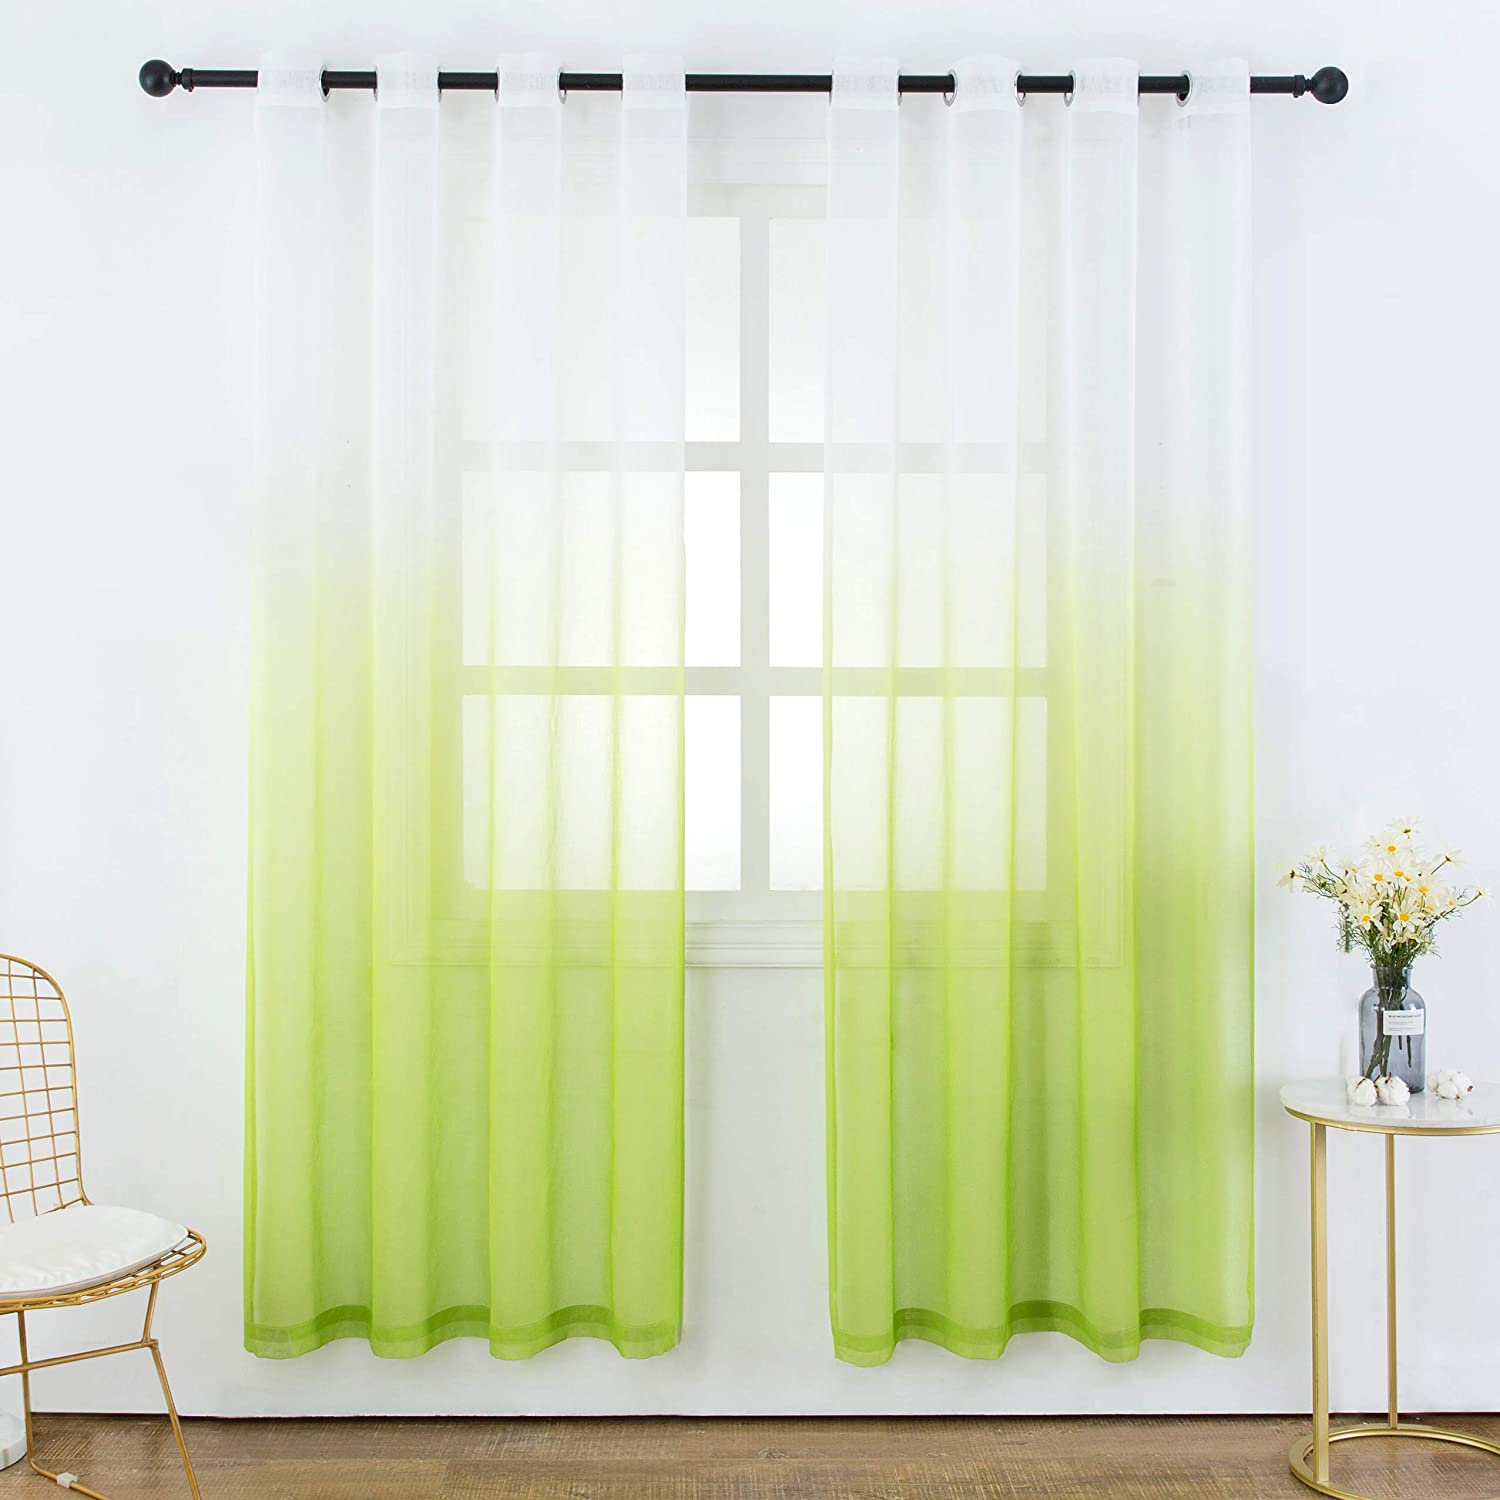 Bermino Faux Linen Sheer Curtains Voile Grommet Ombre Semi Sheer Curtains for Bedroom Living Room Set of 2 Curtain Panels 54 x 95 inch Grass Green Gradient